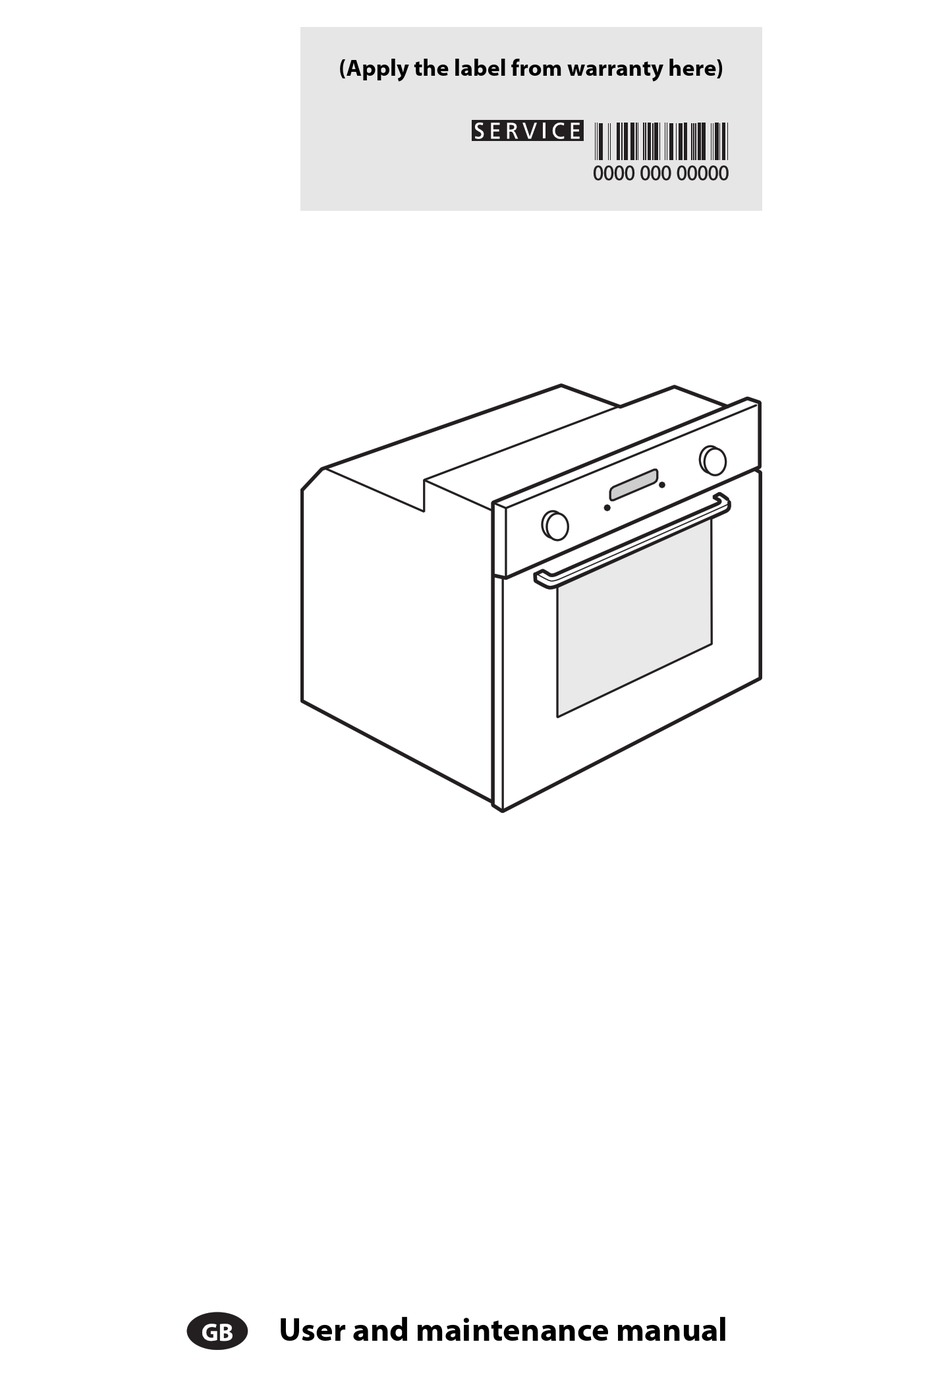 WHIRLPOOL AKP 206/IX USER AND MAINTENANCE MANUAL Pdf